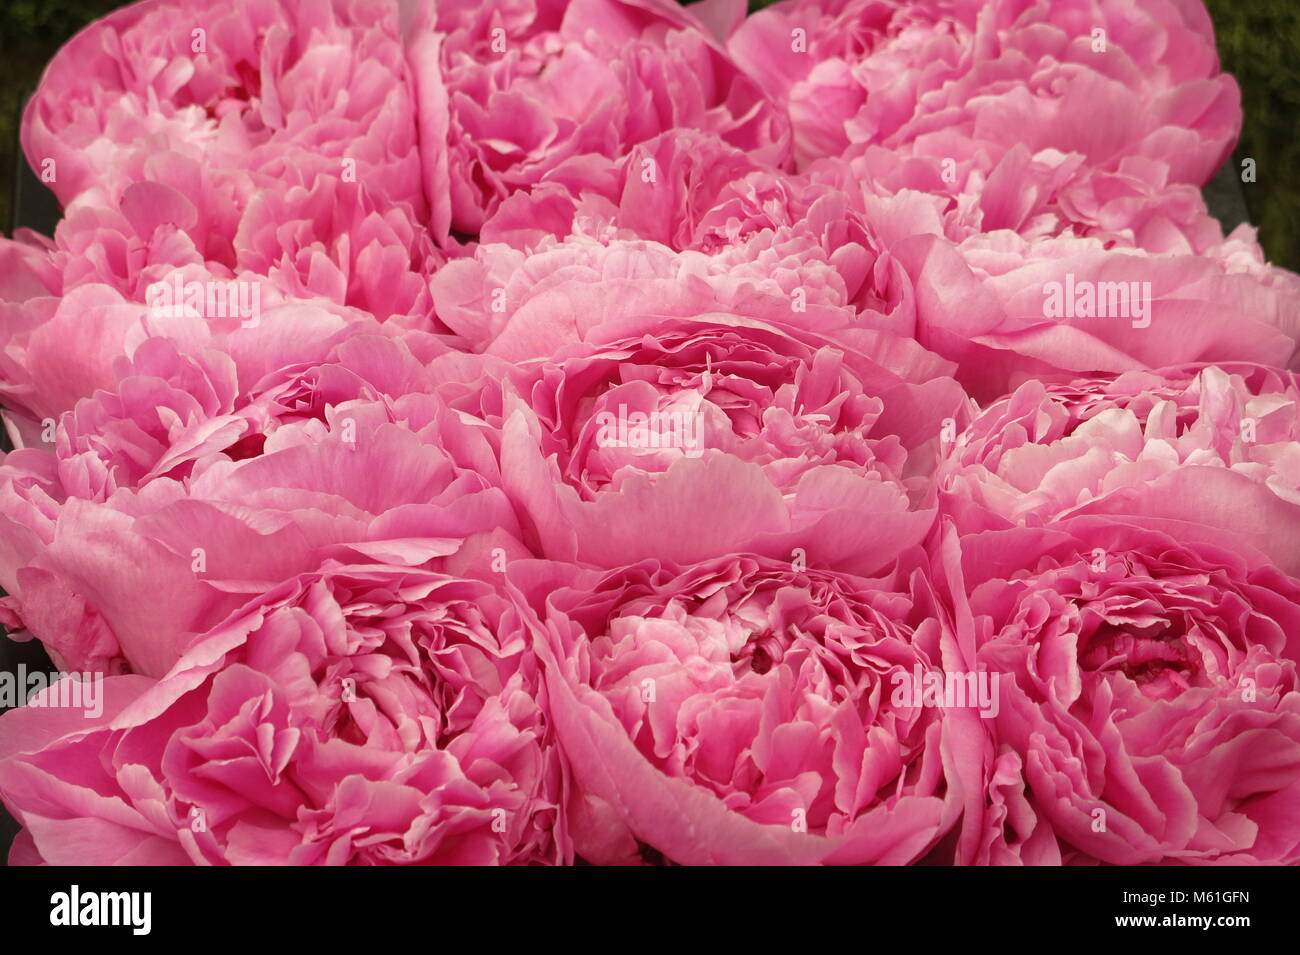 A dozen pink peonies in full bloom at RHS Chelsea Flower Show, May 2017 - Stock Image